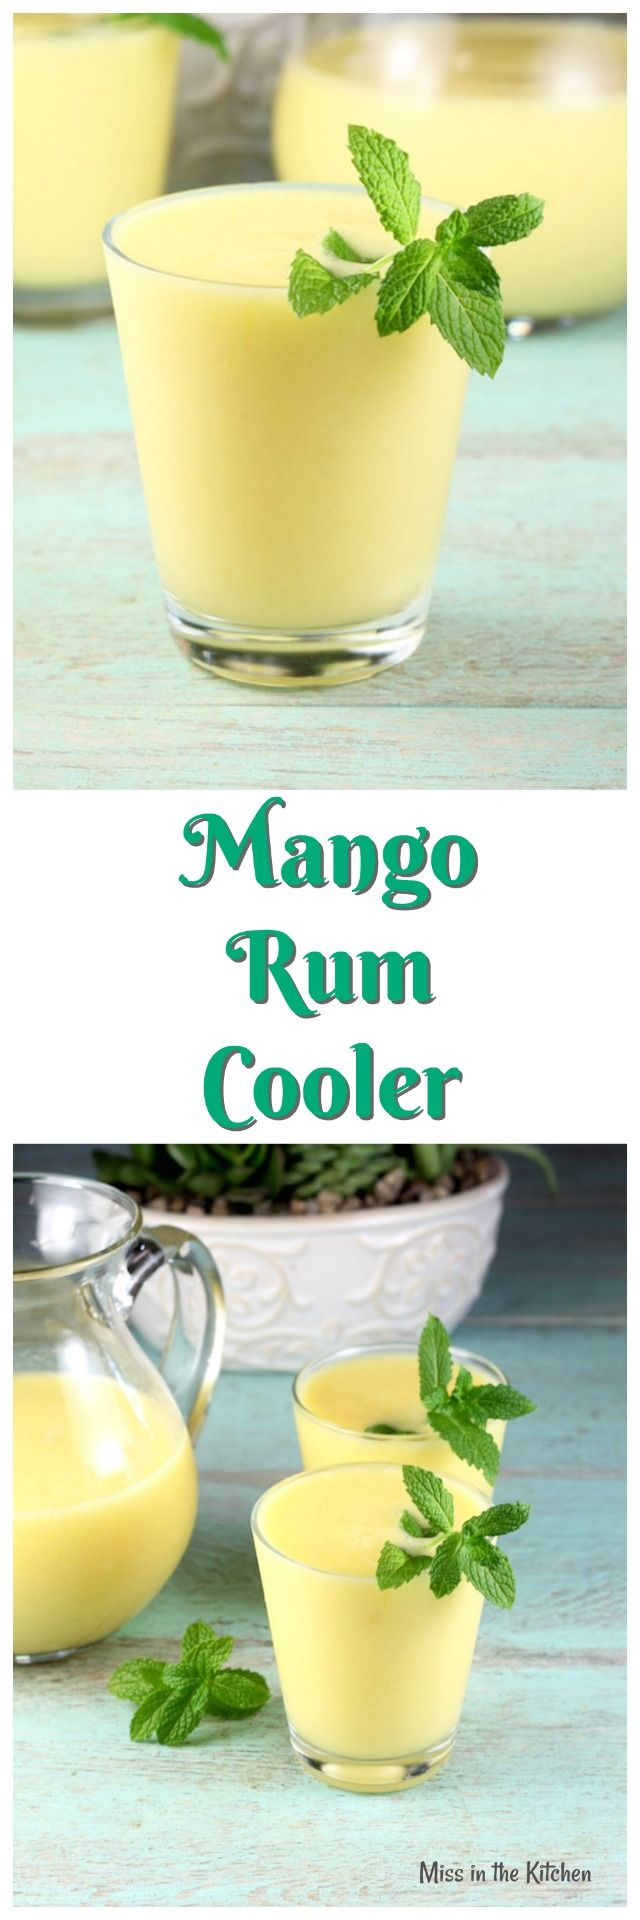 Best 25+ Cocktail recipes ideas on Pinterest | Cocktail ...